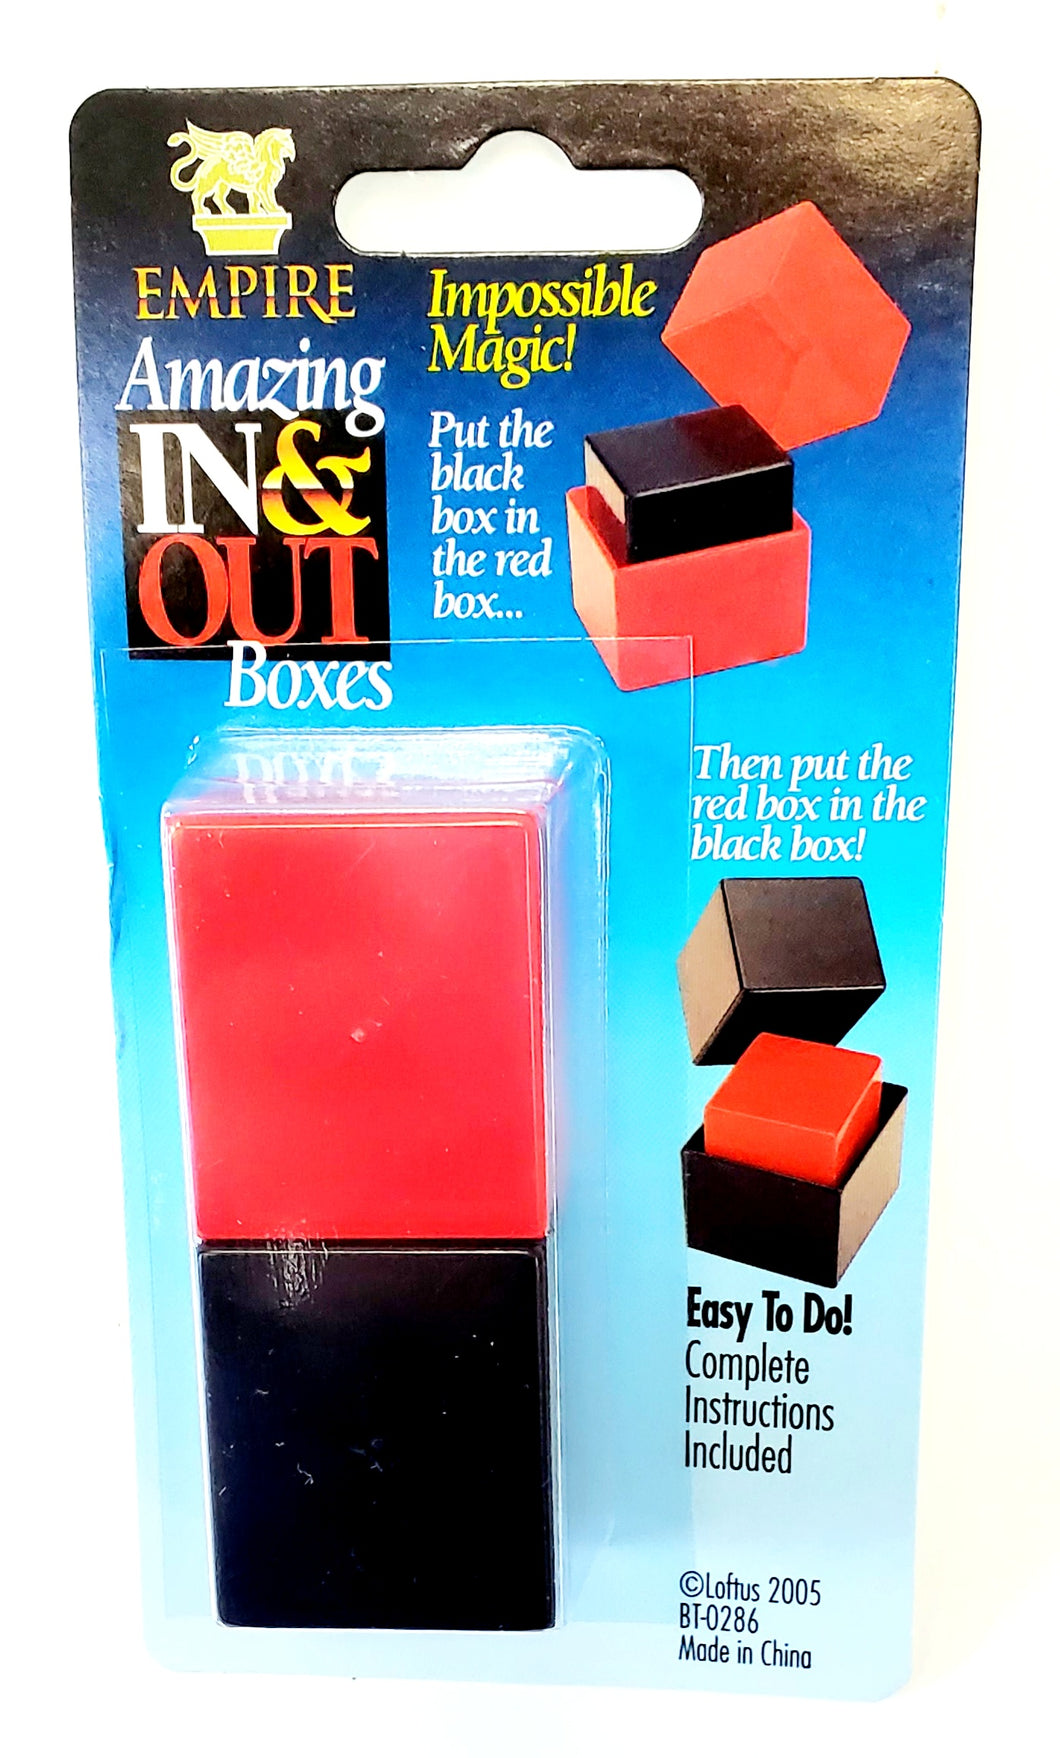 In 'N' Out Boxes (Gozinta boxes)